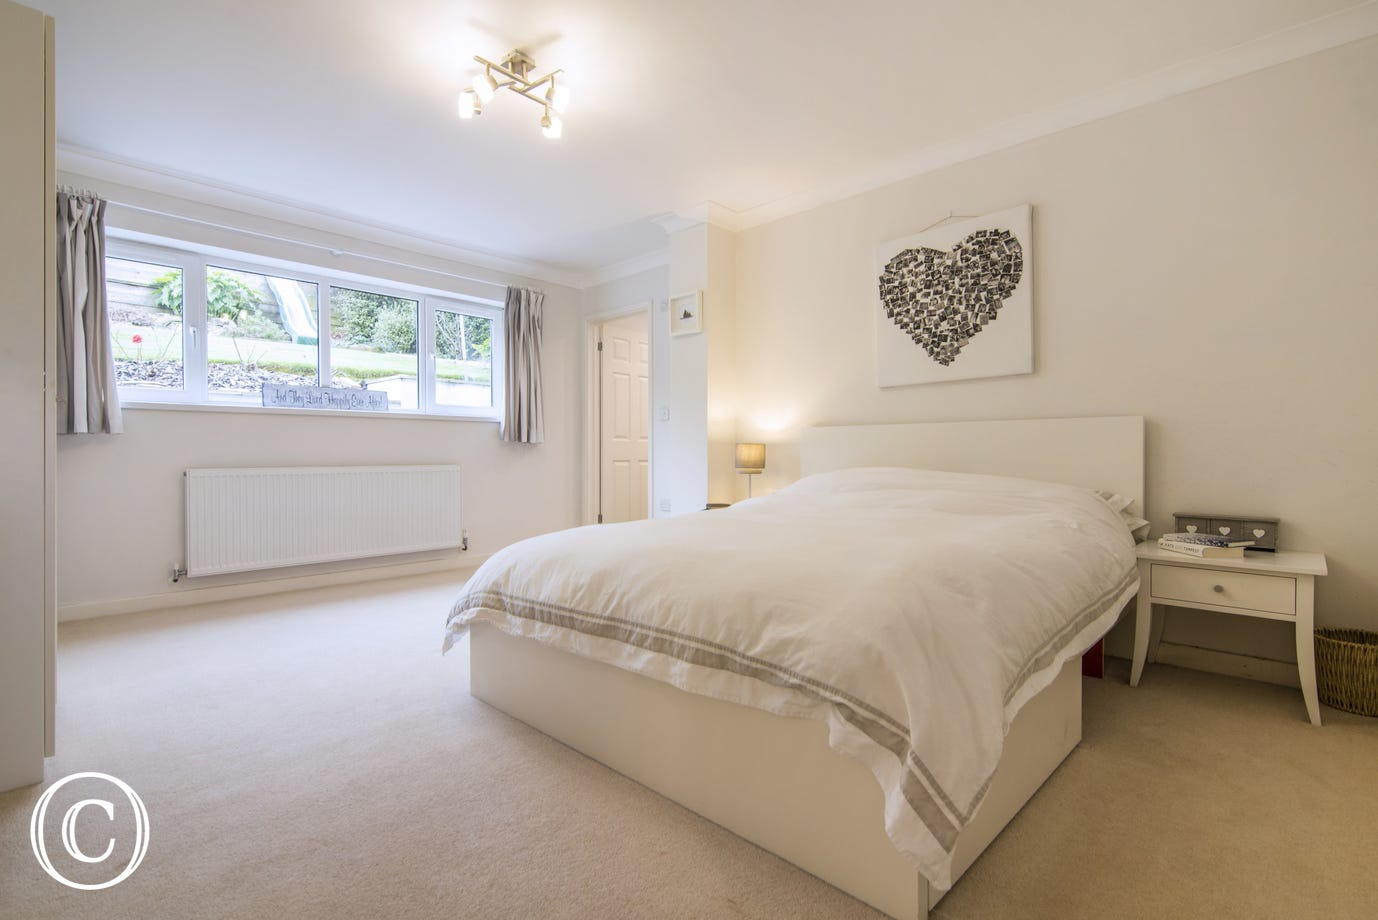 Spacious master en-suite bedroom with over-sized king size bed